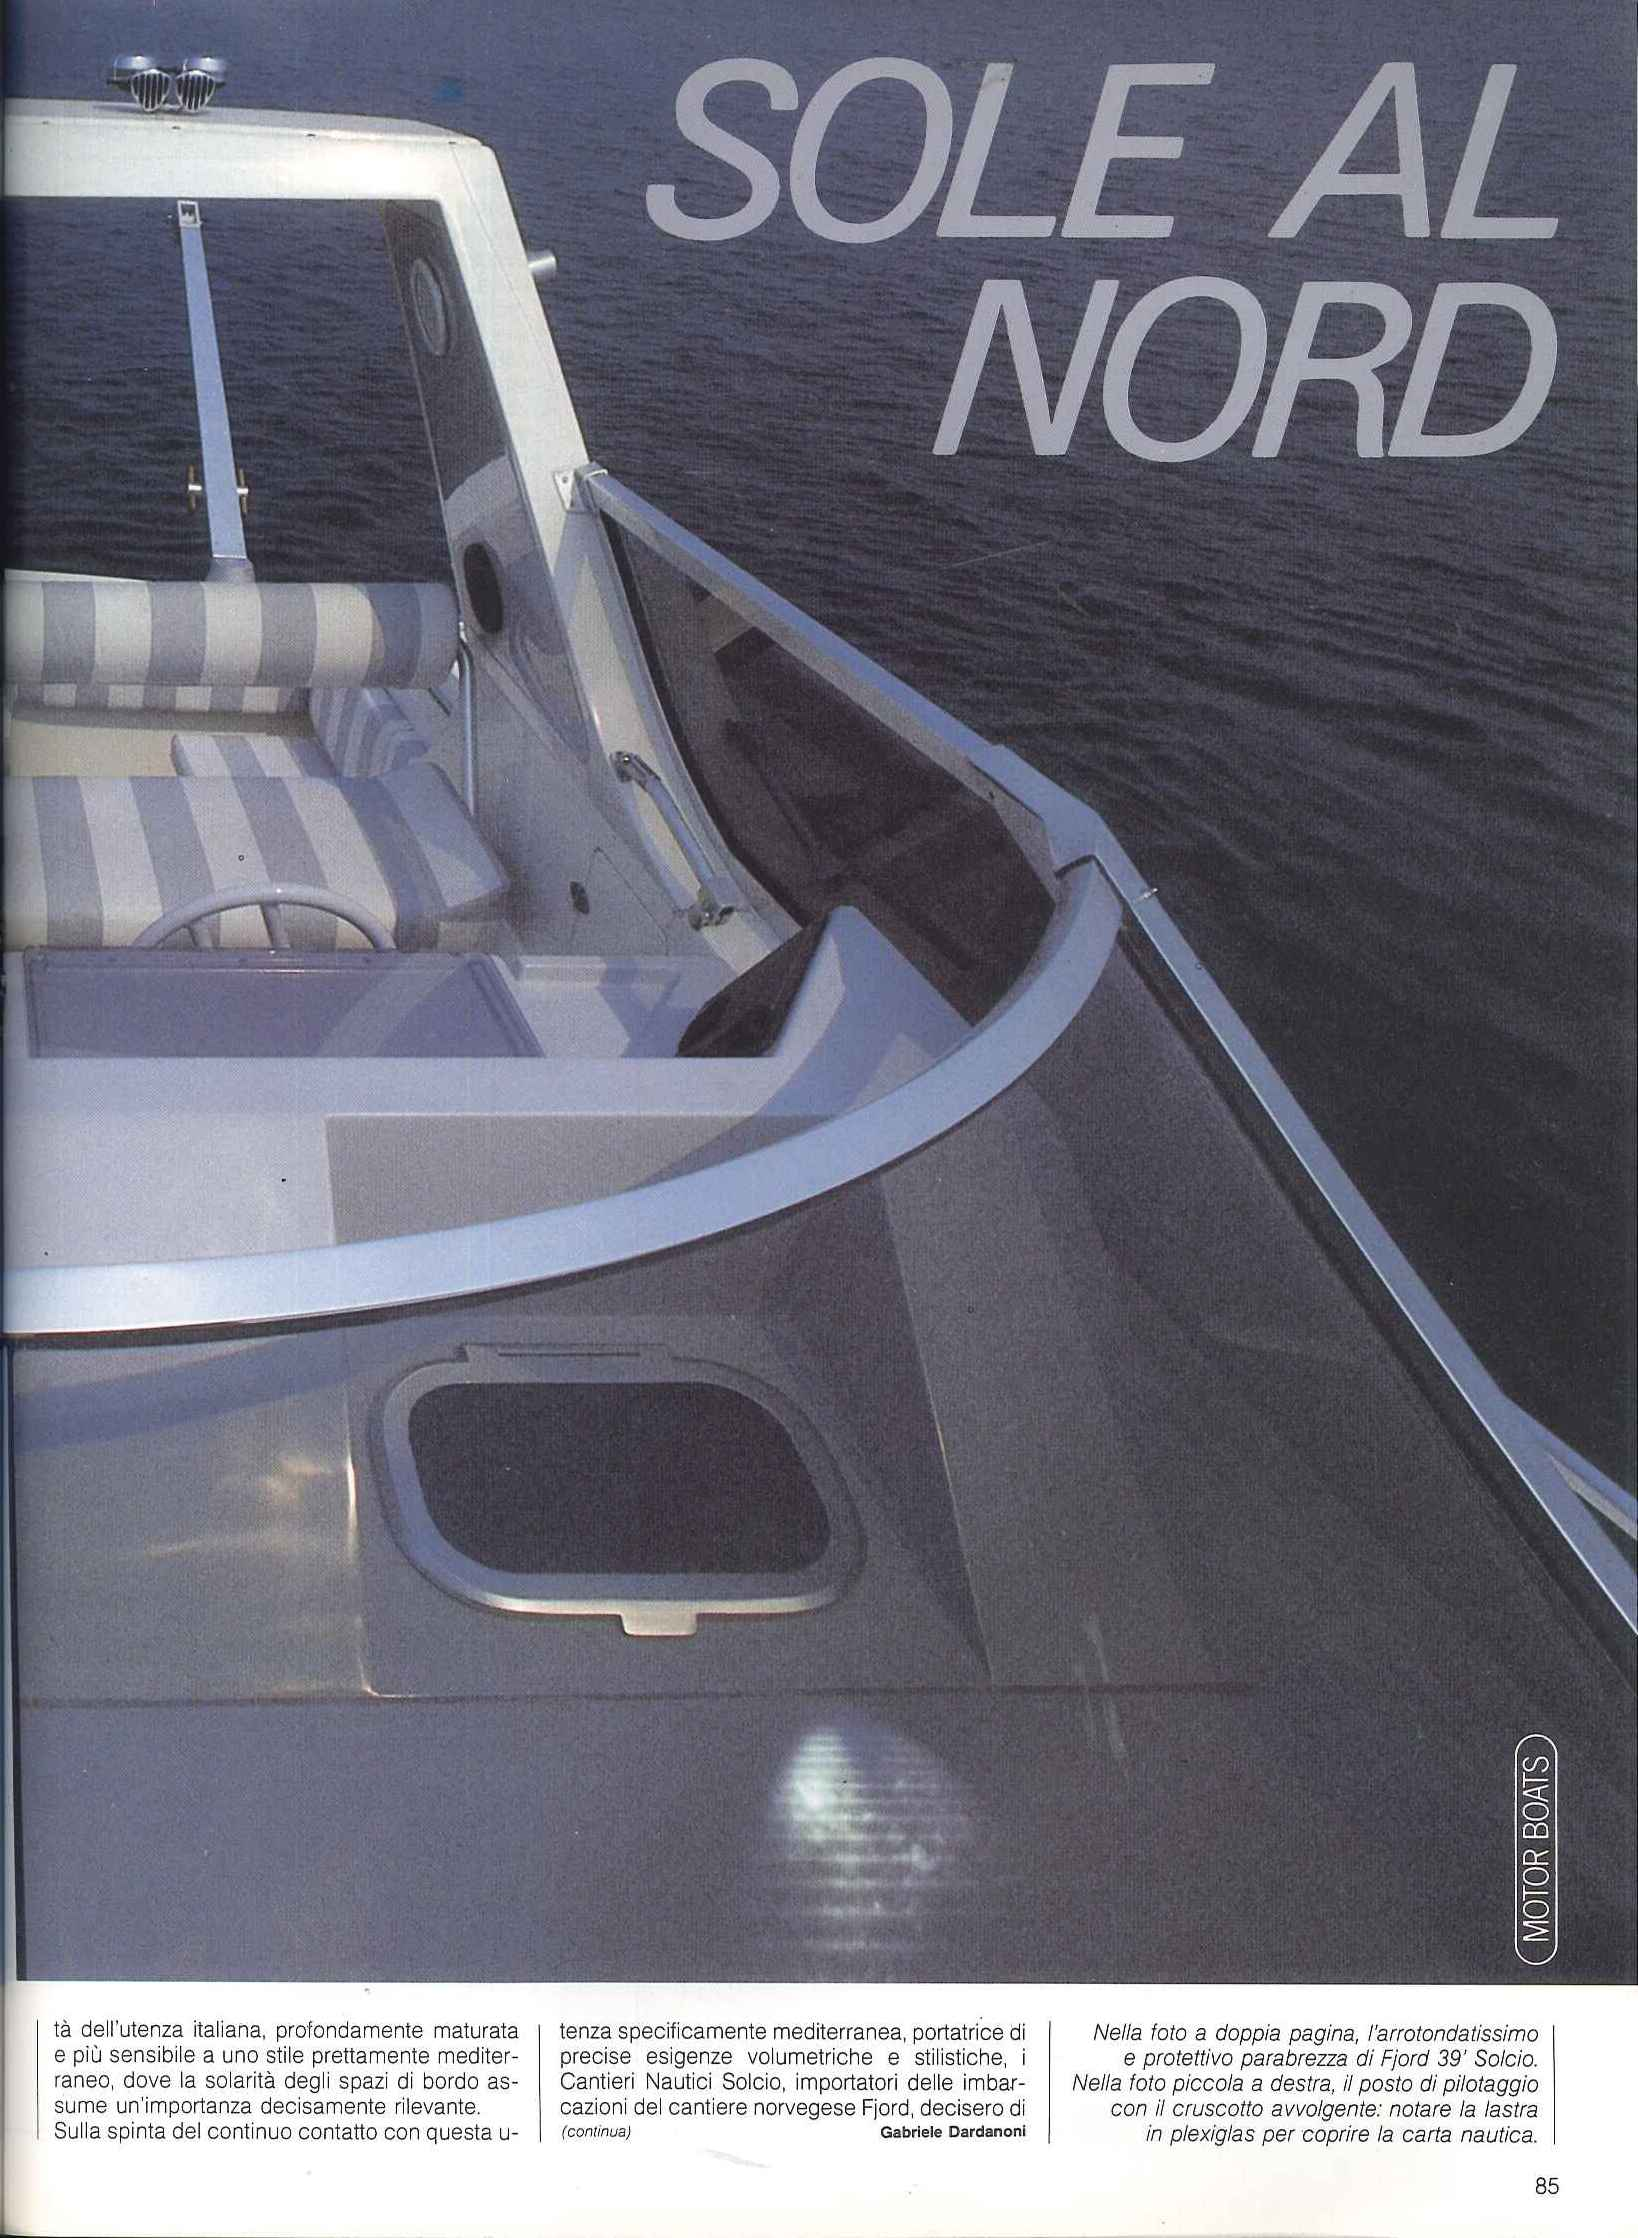 1986 09 PRESS FJORD 39 SOLCIO Uomo Mare n° 101 (25).jpg